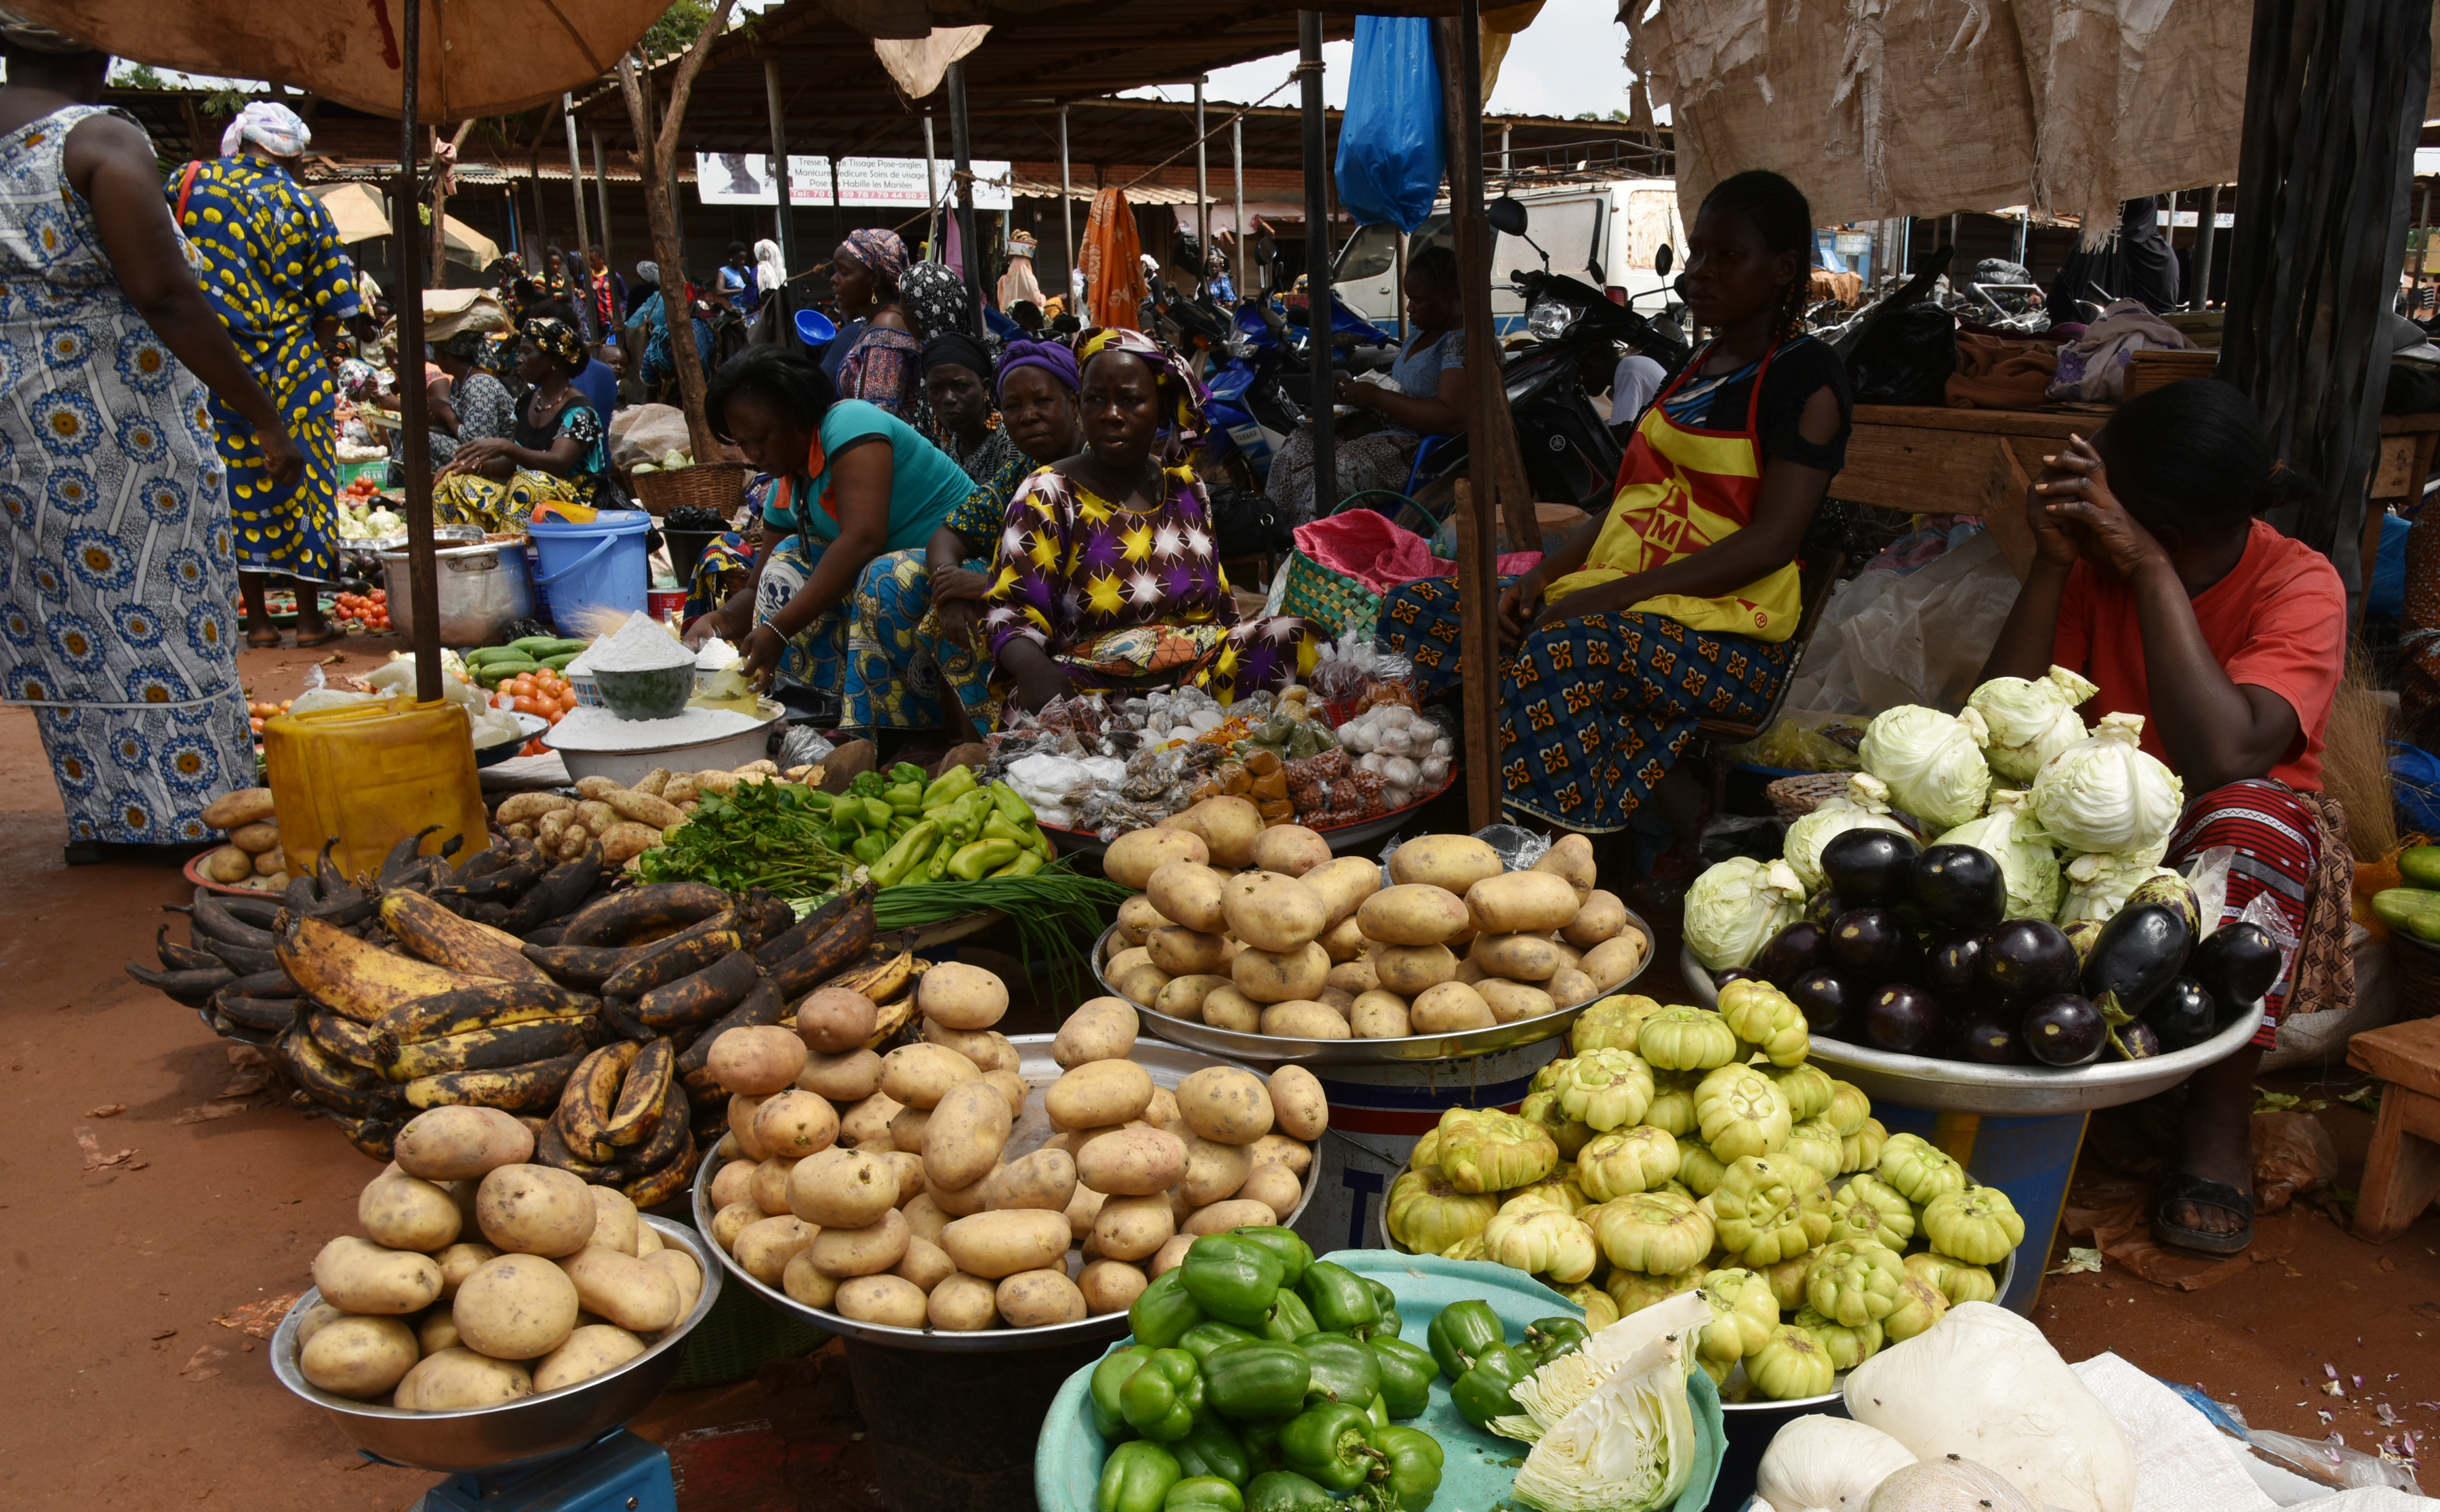 Fruit and vegetables merchants are pictured in a market of market of Ouagadougou, on September 21, 2015. AFP PHOTO / SIA KAMBOU / AFP / SIA KAMBOU